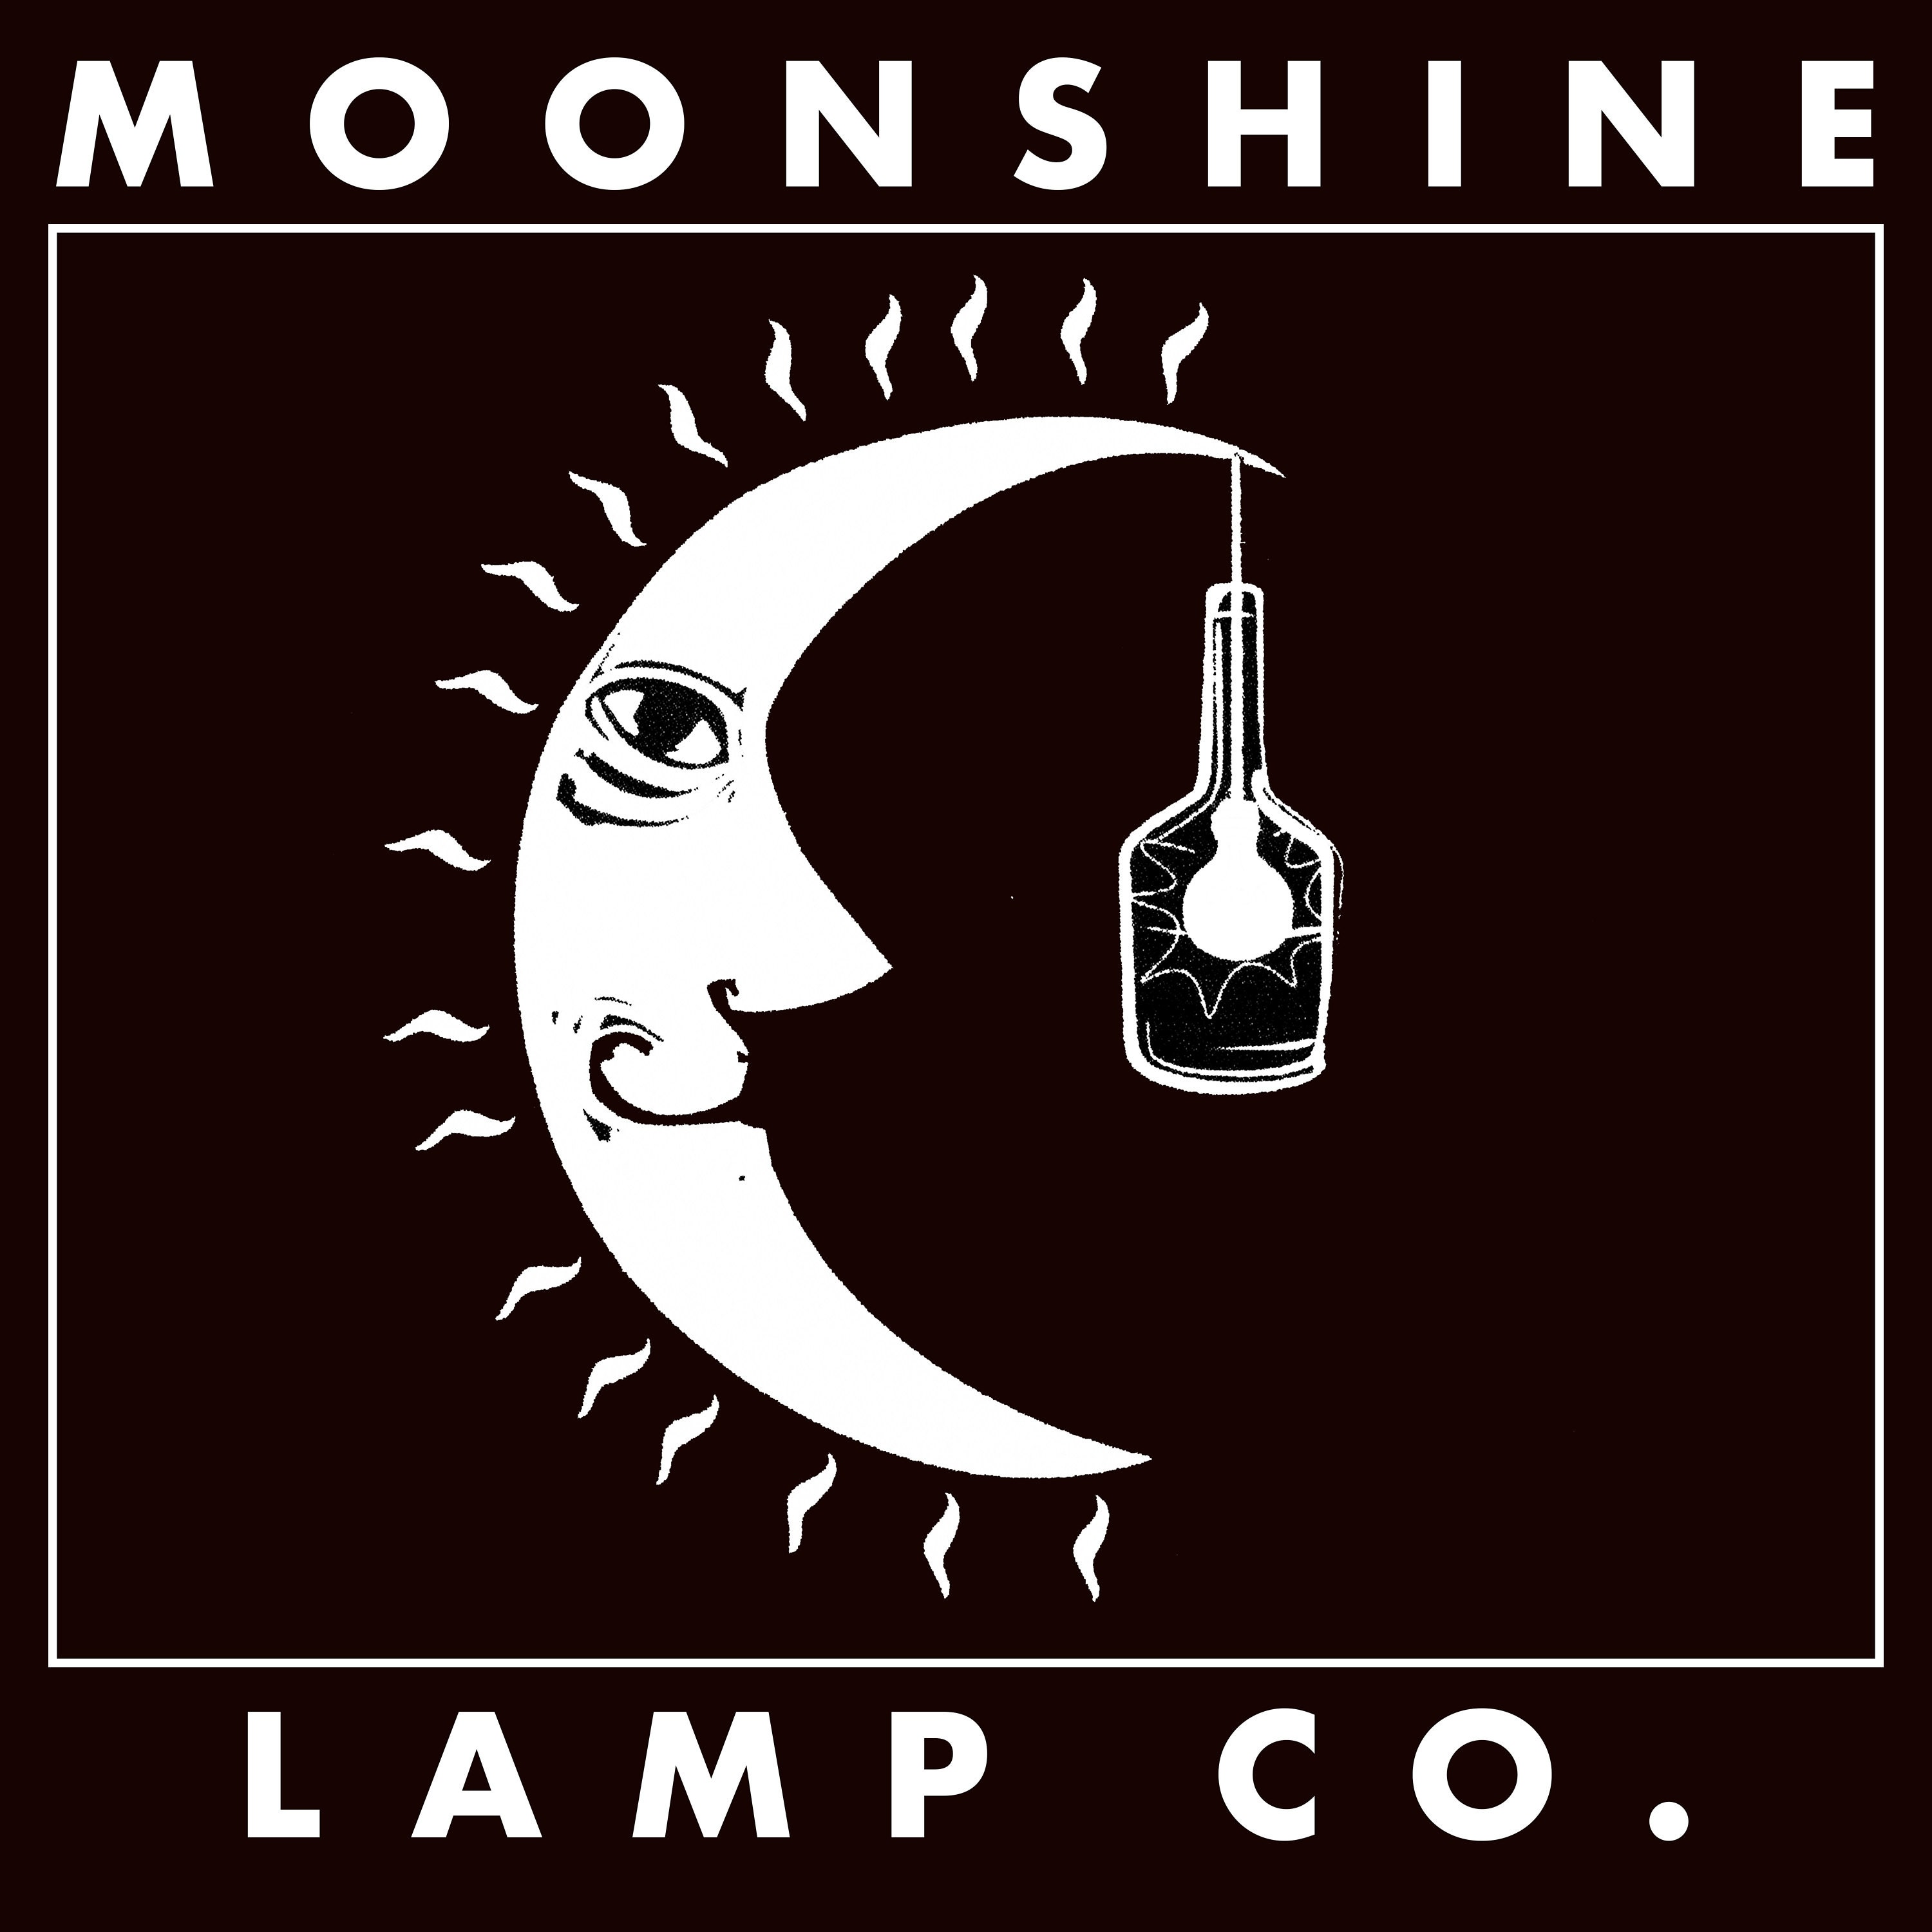 Moonshine lamp co by moonshinelamp on etsy aloadofball Gallery